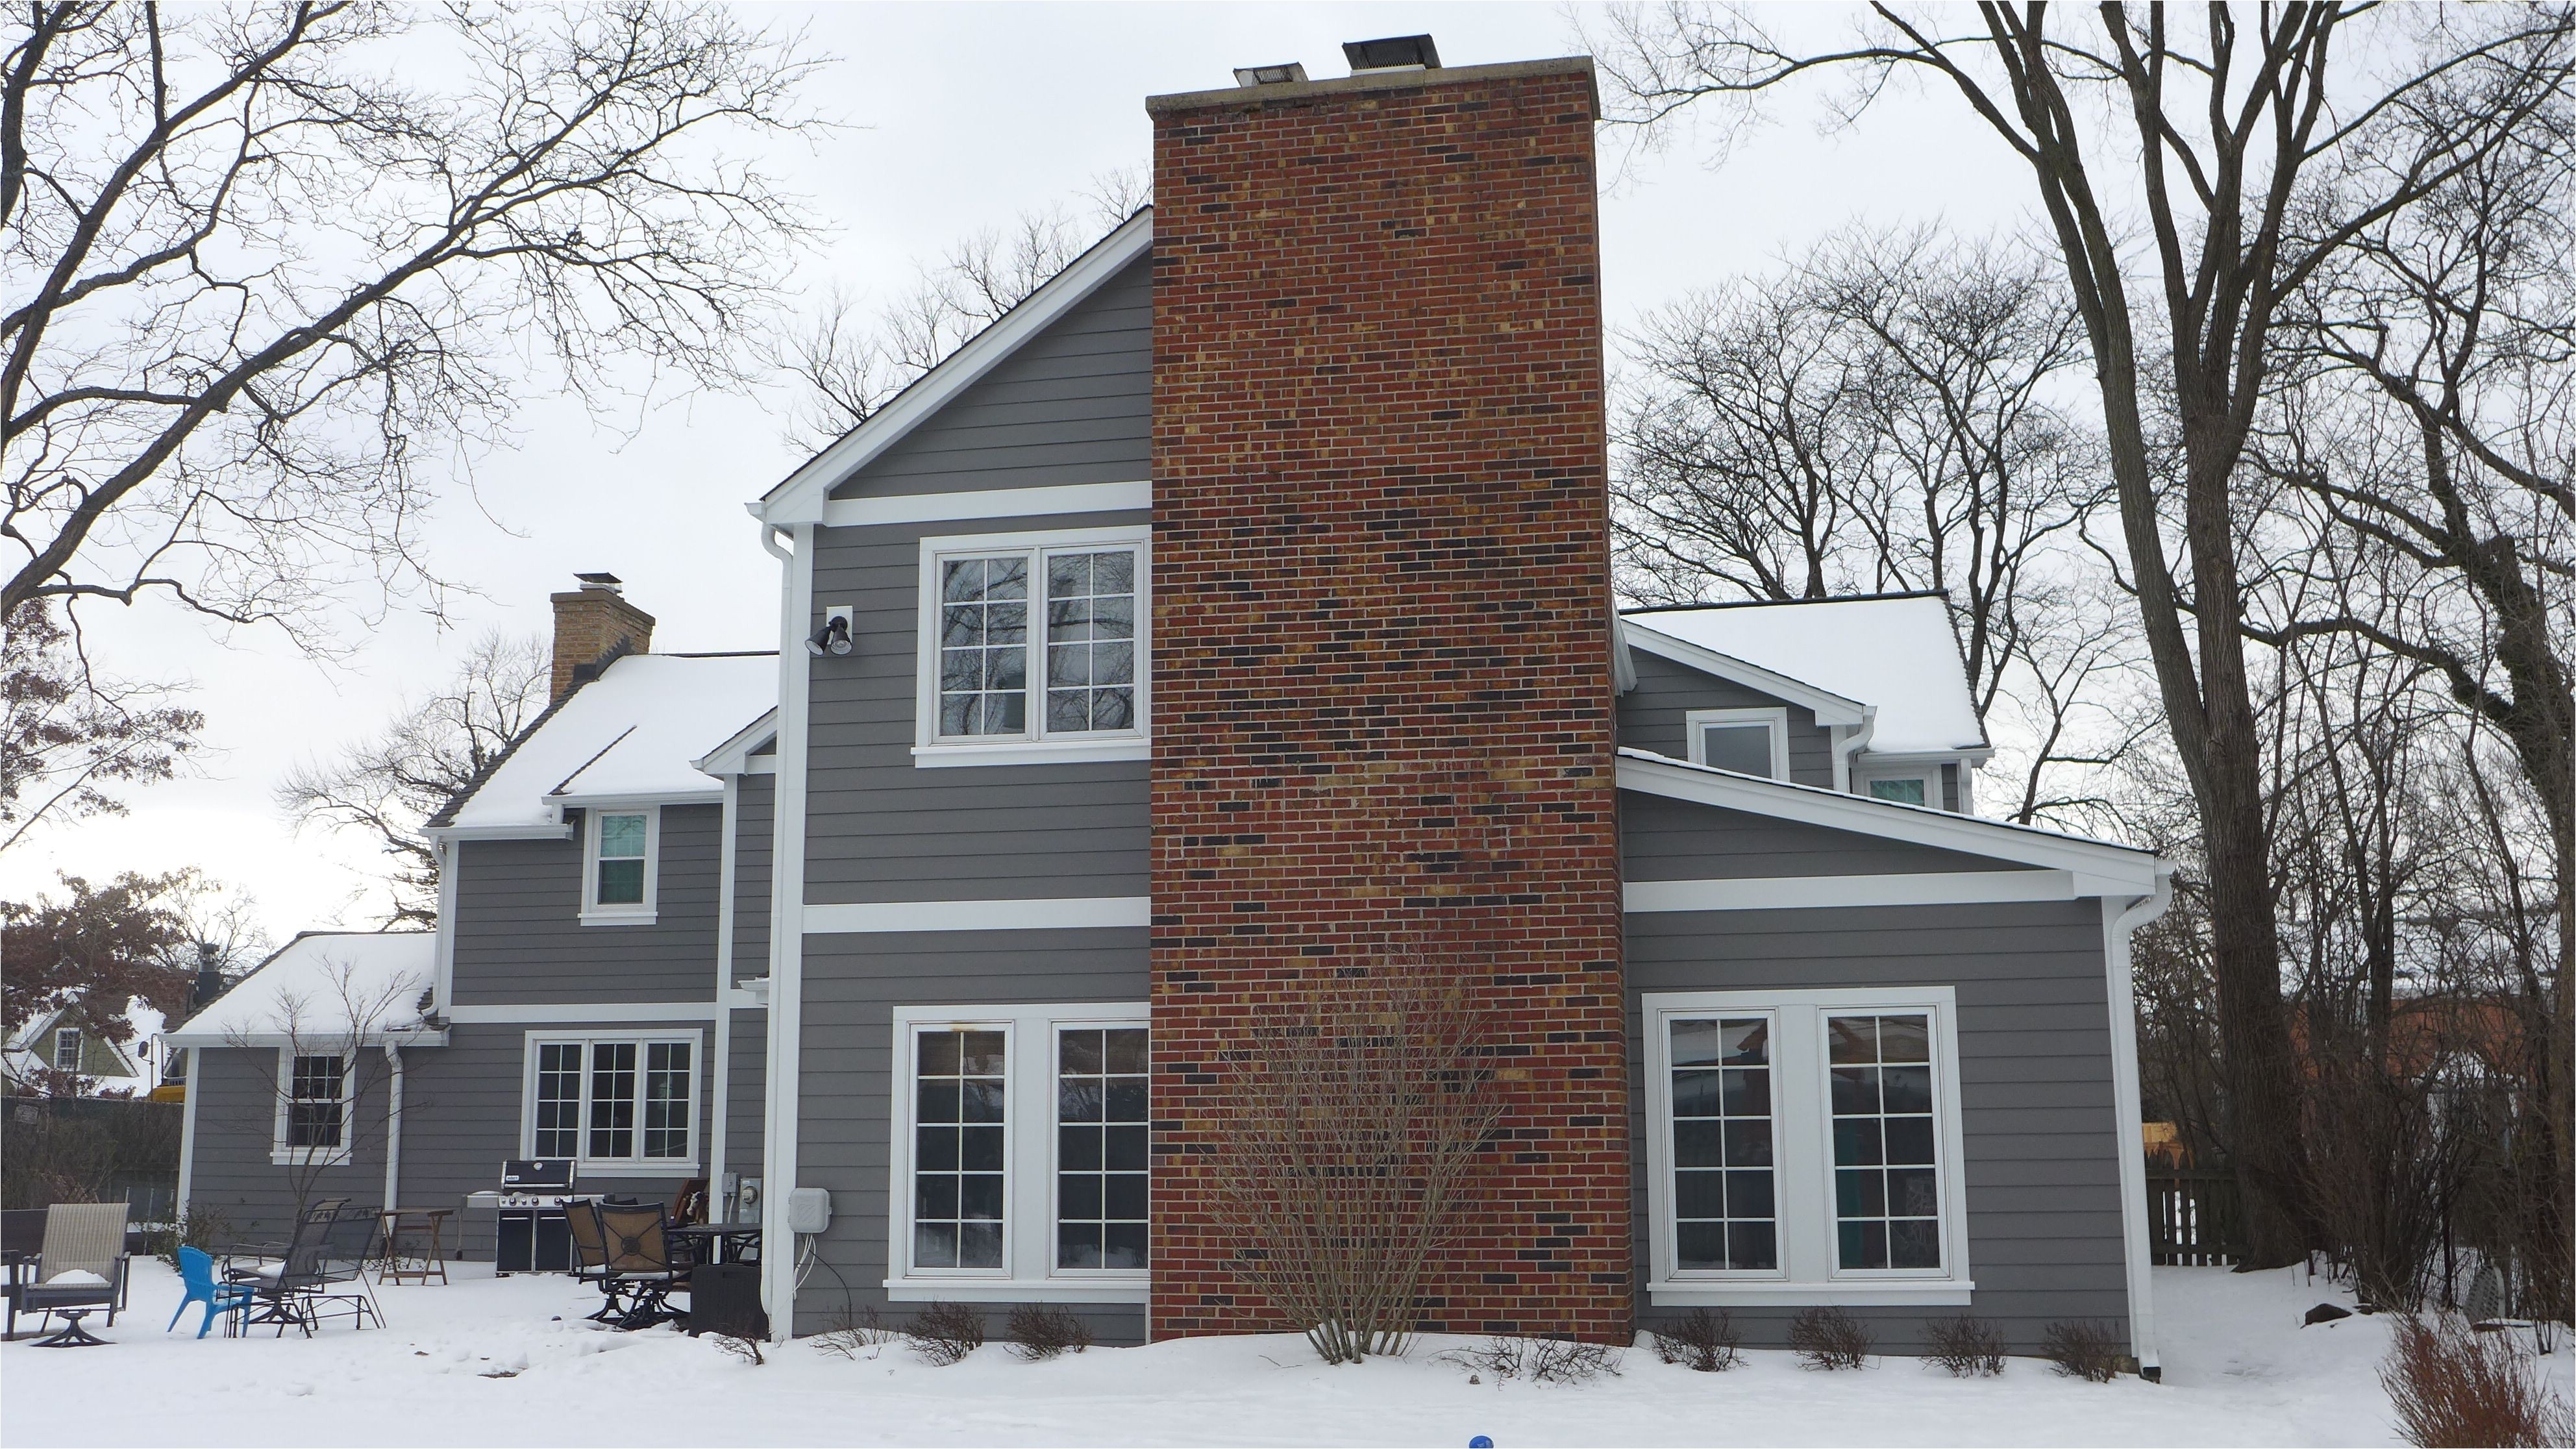 james hardie siding in aged pewter with arctic white trim certainteed roofing in driftwood homeremodel exteriors